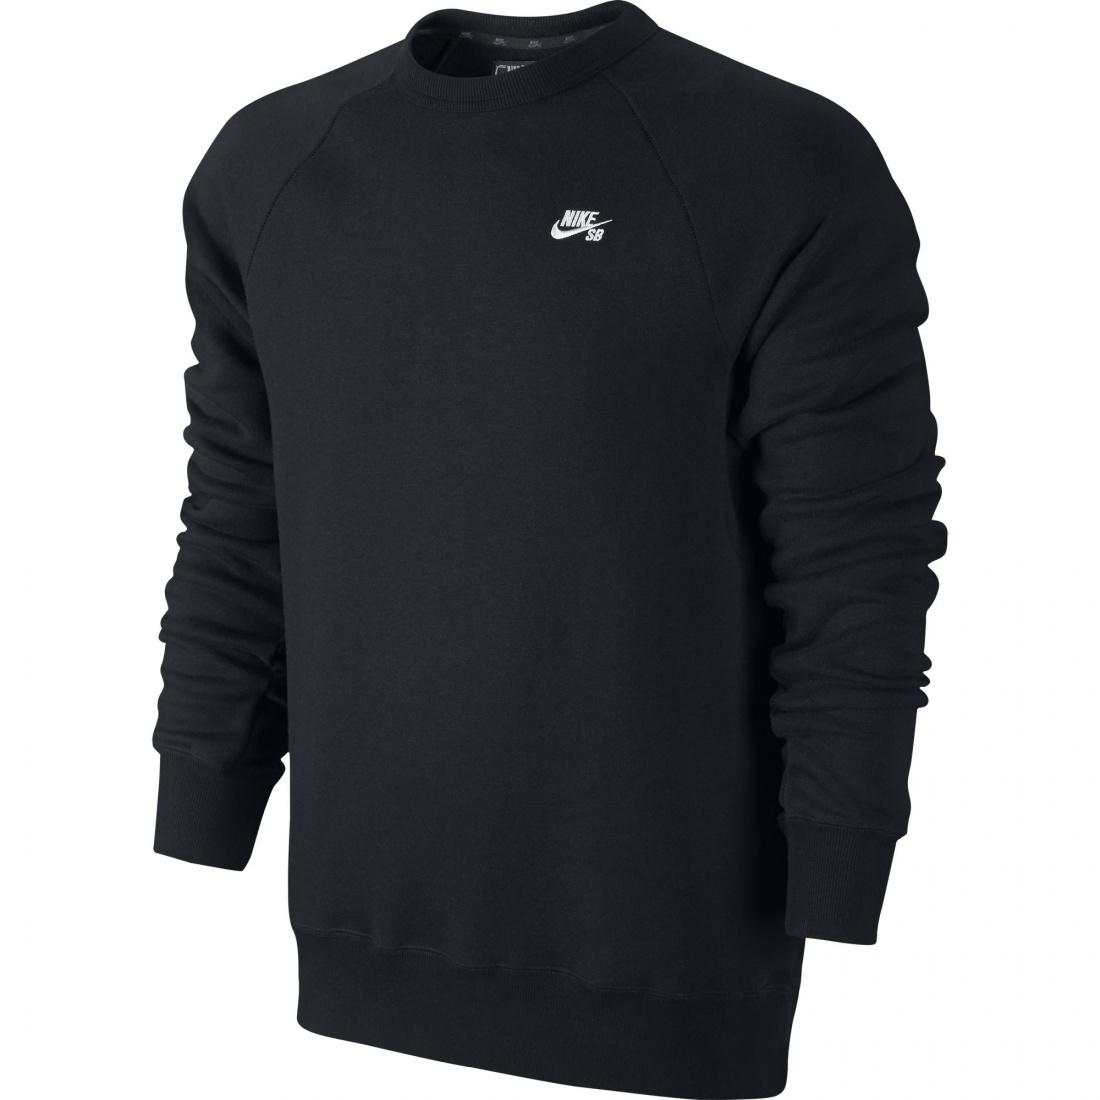 Nike SB Свитшот Nike SB Icon Crew Fleece Black/White S nike худи nike fleece city lights po hdy